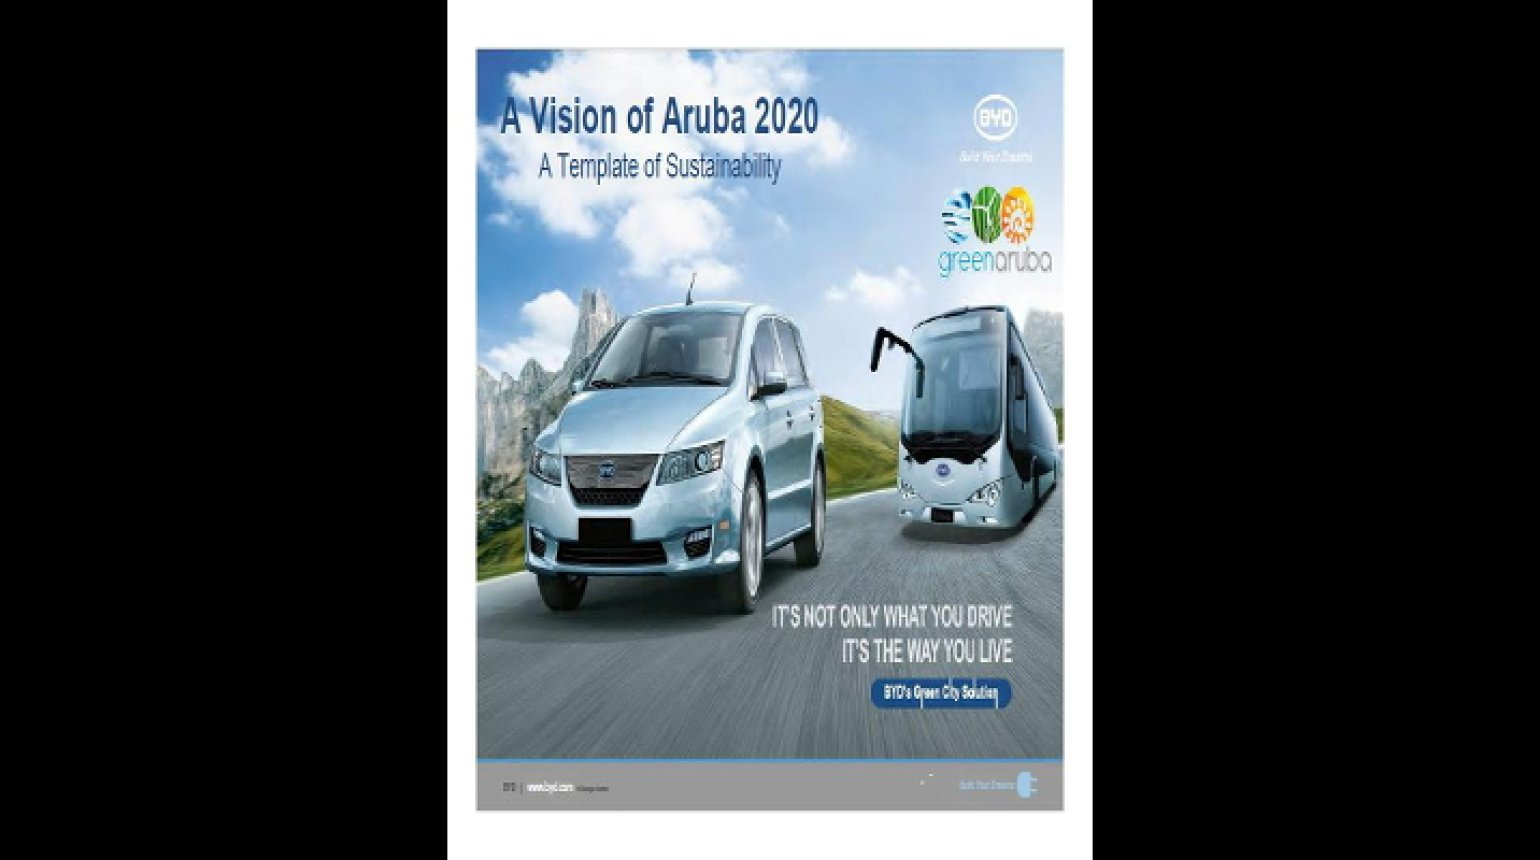 Video - A Vision of Aruba 2020, A Template for Susatianability